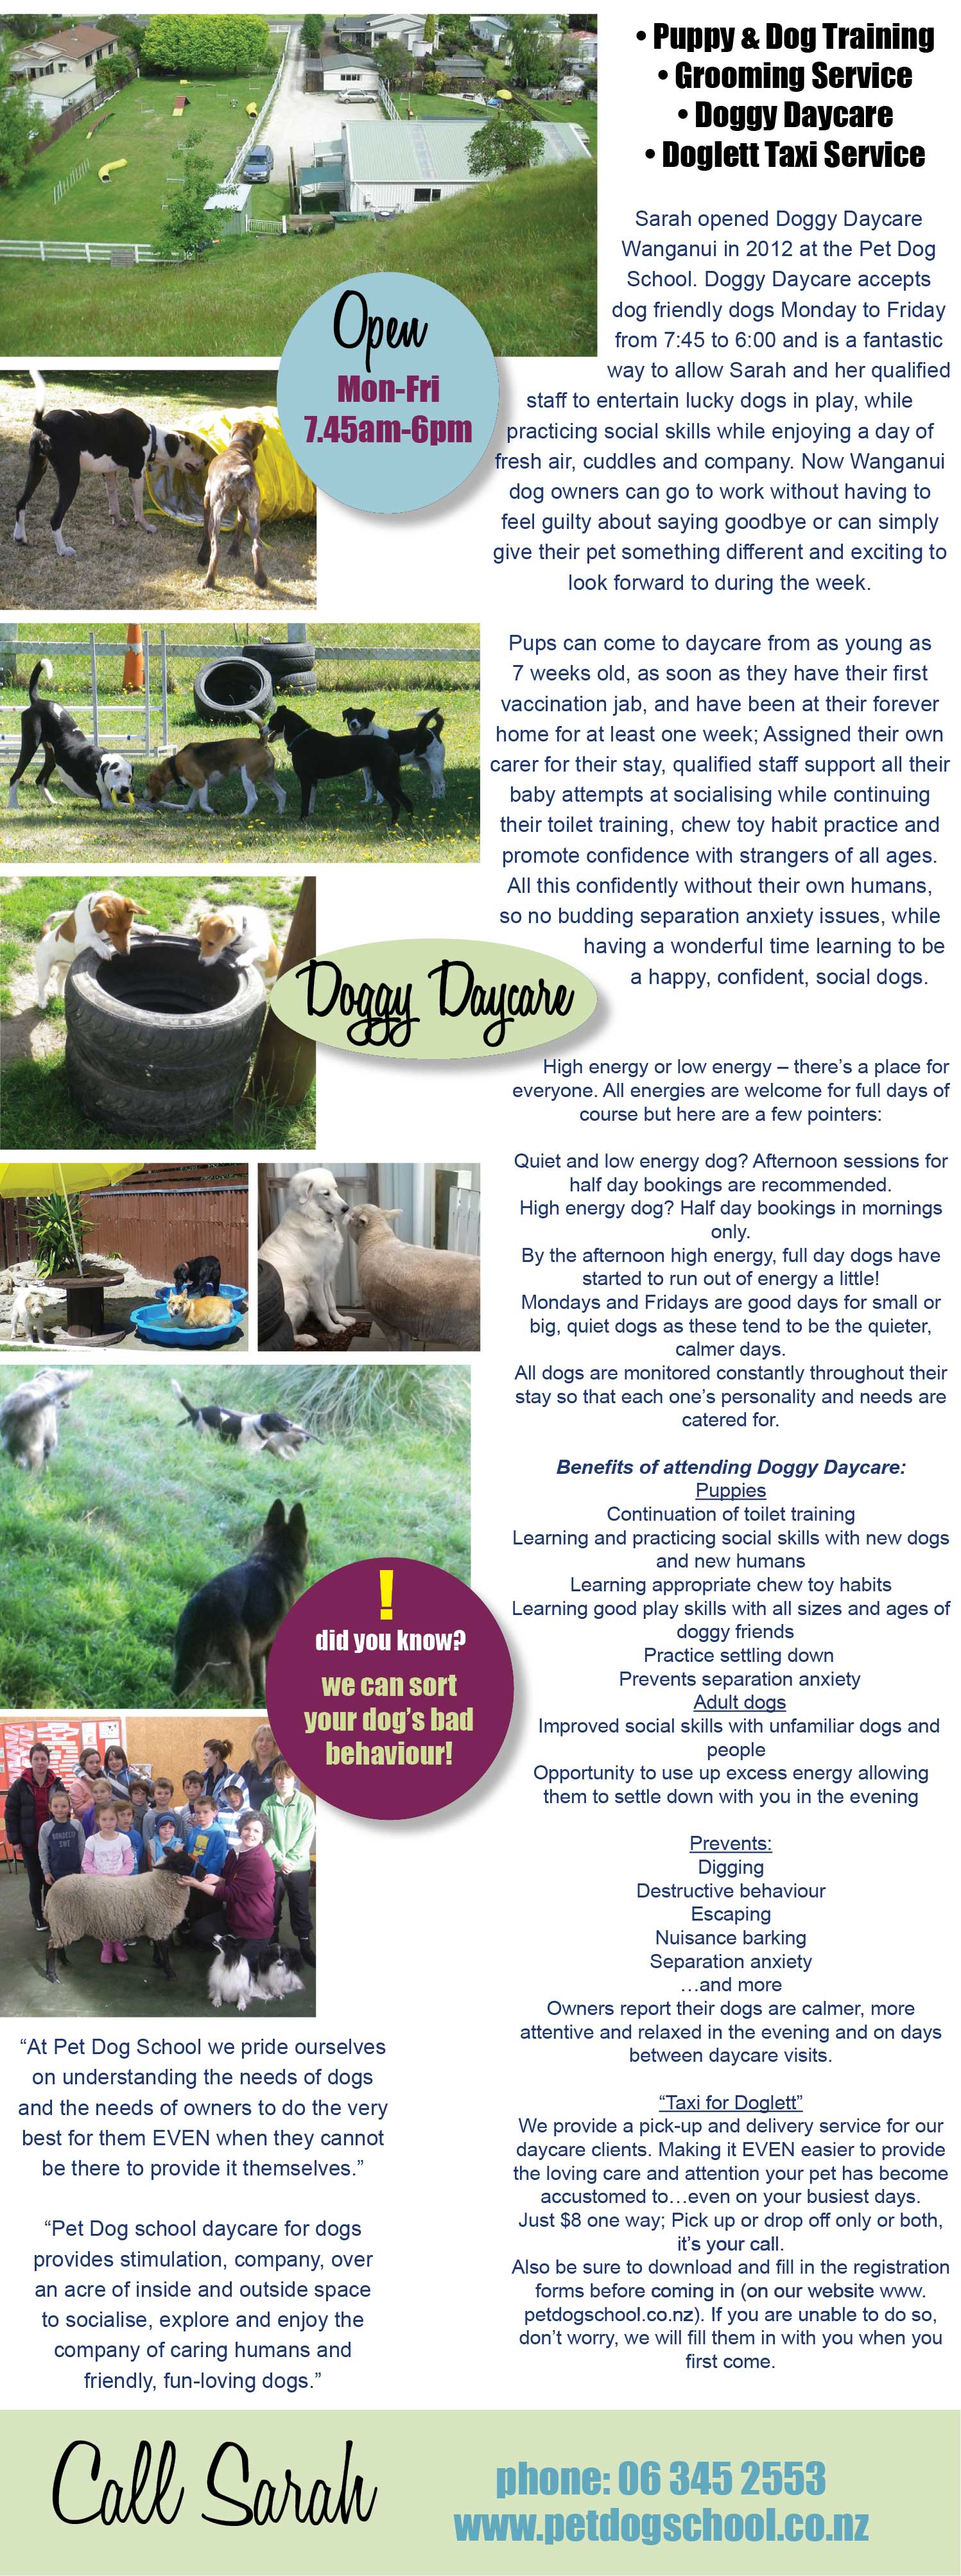 Pet Dog School, Wanganui. Dog Training, Puppy Training, Grooming, dog groomer, dog daycare • Puppy & Dog Training